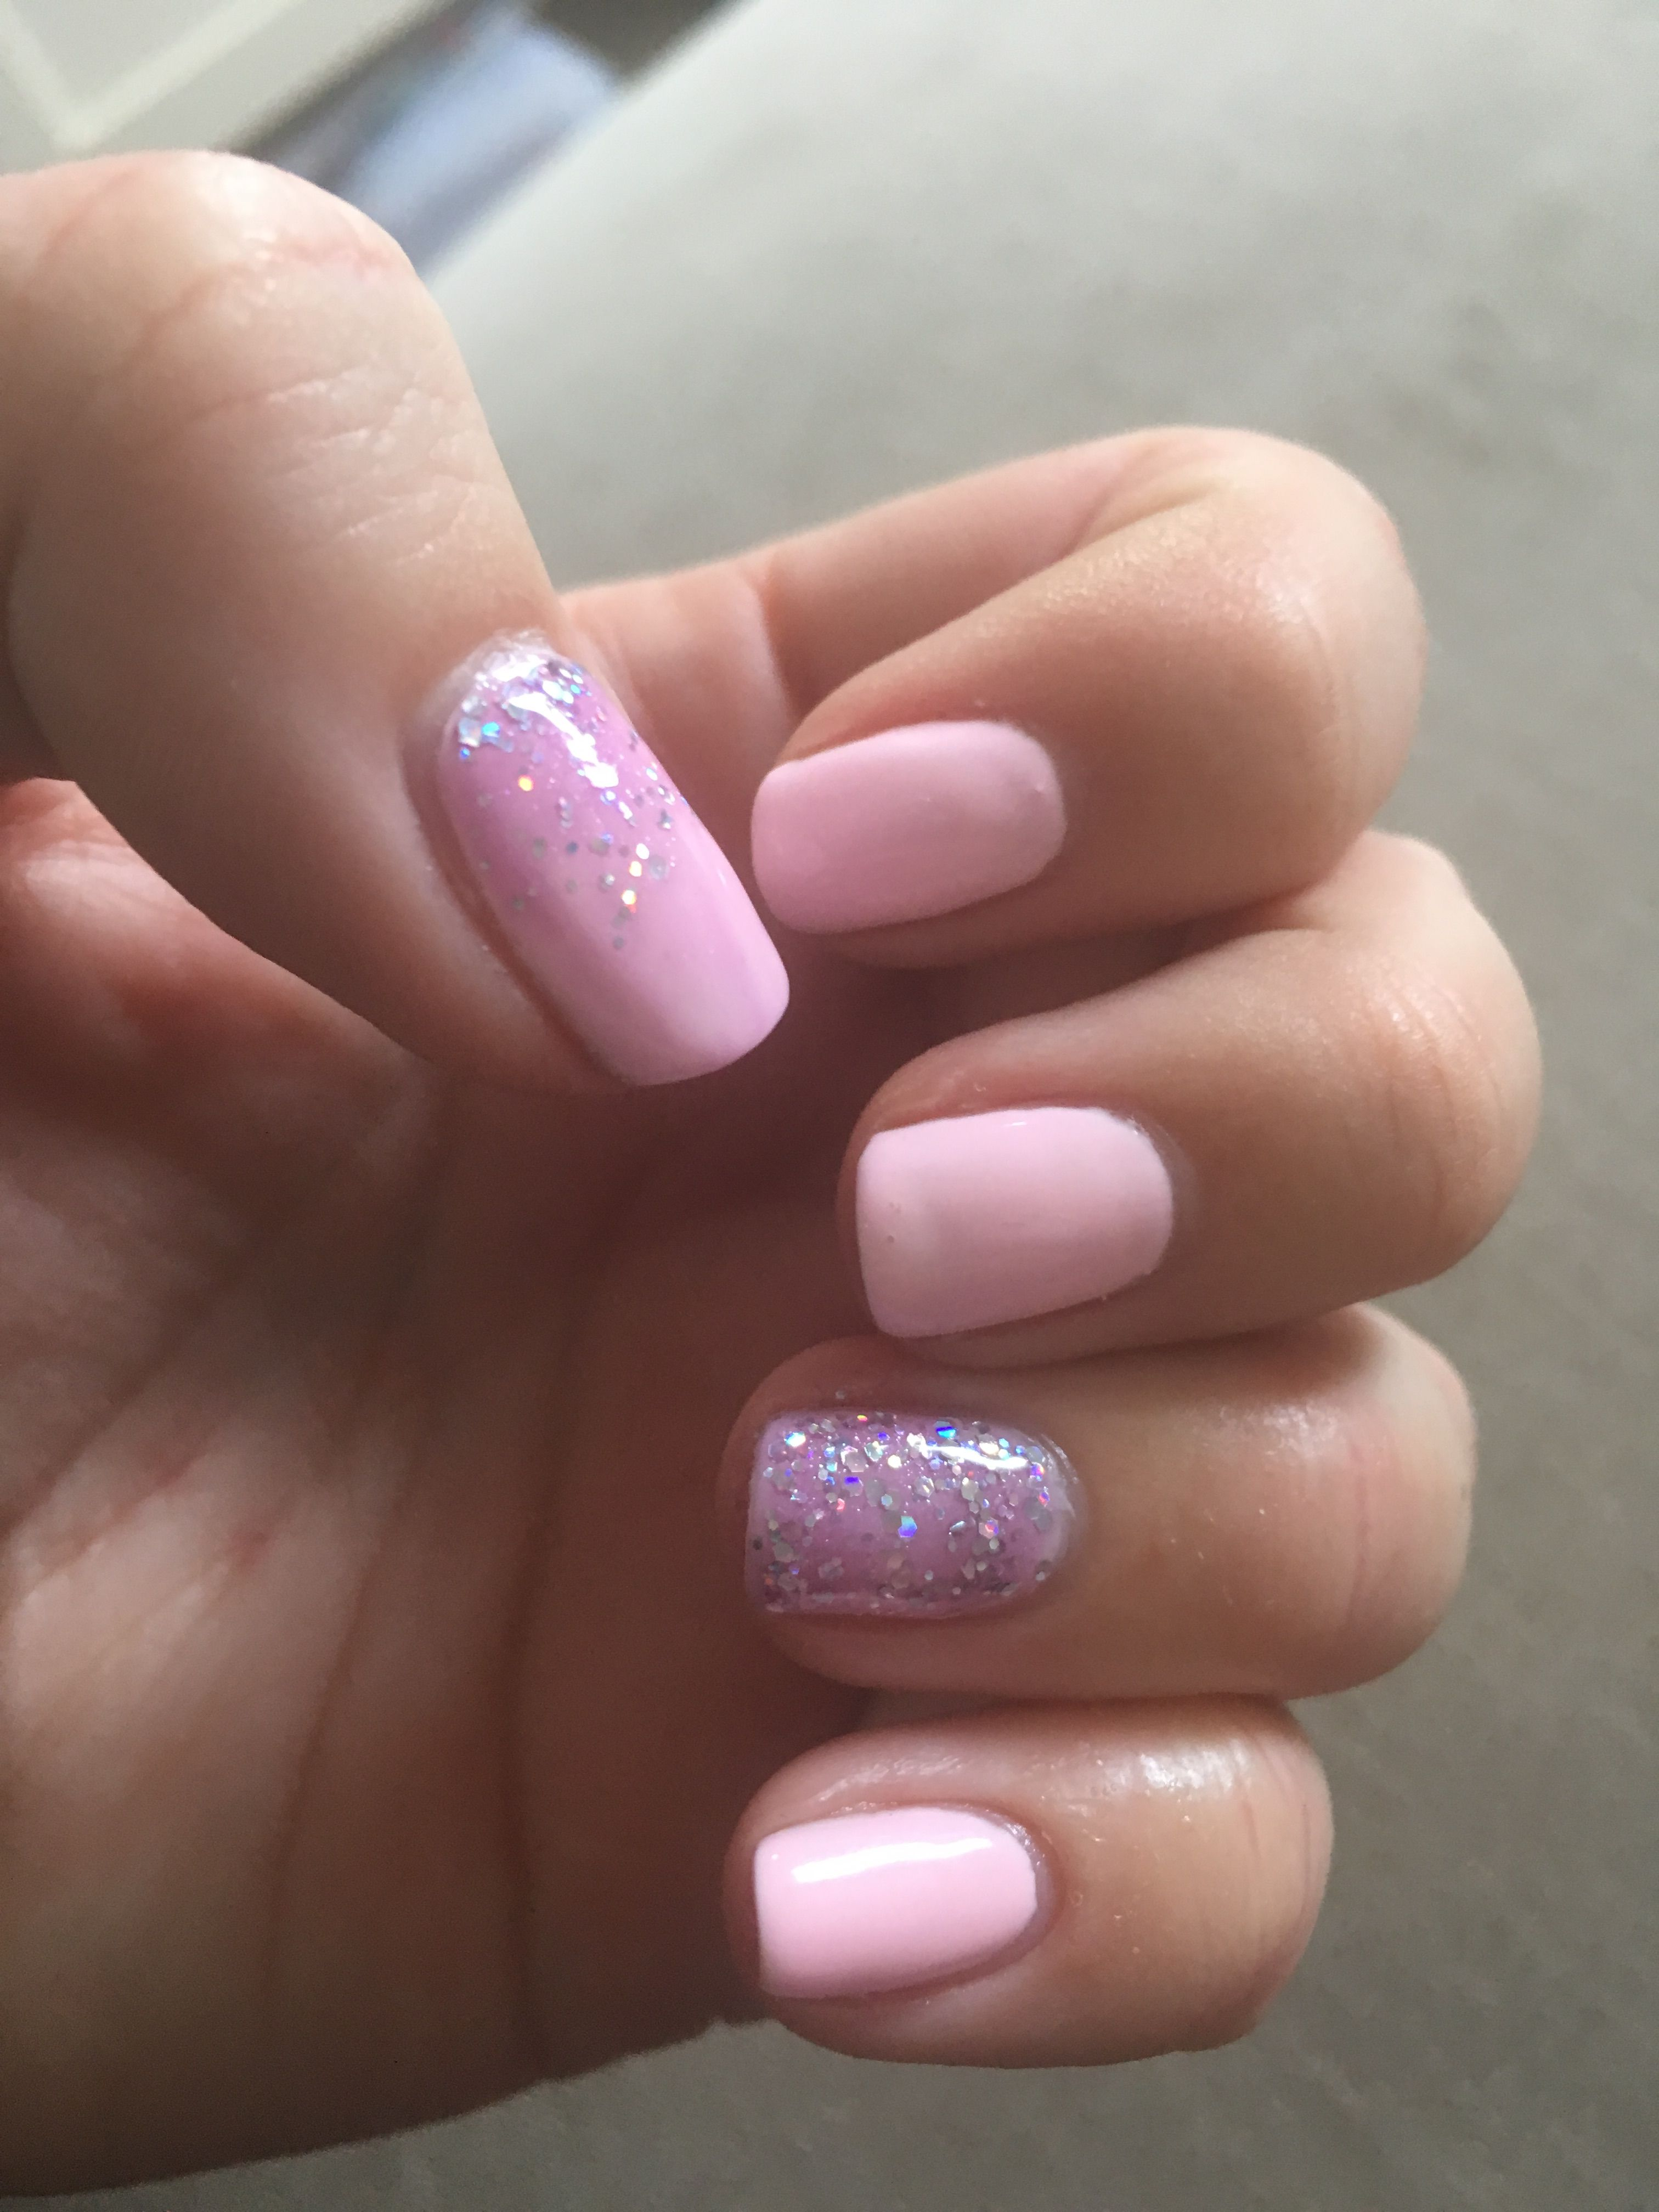 Pink Sparkle Gel Nails Gelish Baby Pink Iced Pink Pastel Nails Girlie Look Nails X Sparkle Gel Nails Pink Nails Glitter Gel Nails